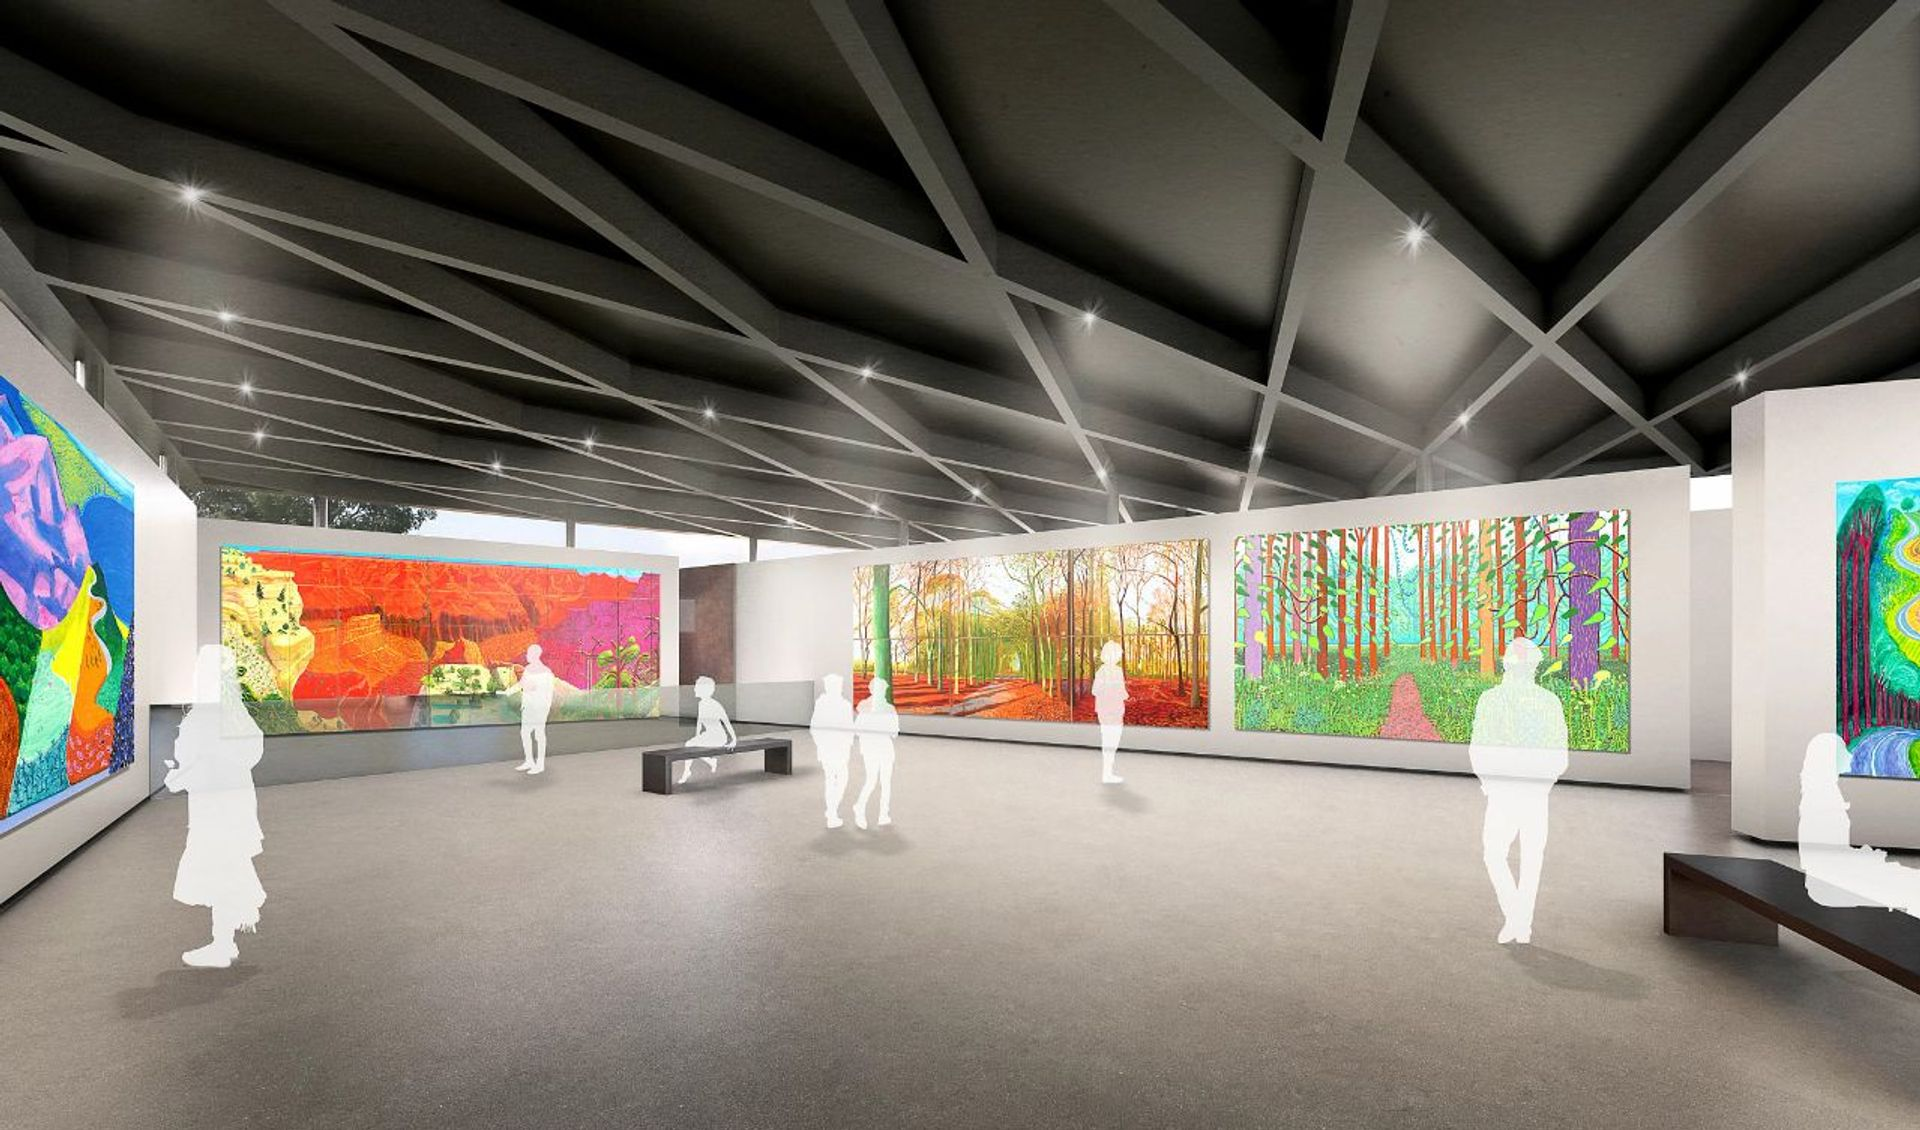 A rendering of the gallery space with works by David Hockney